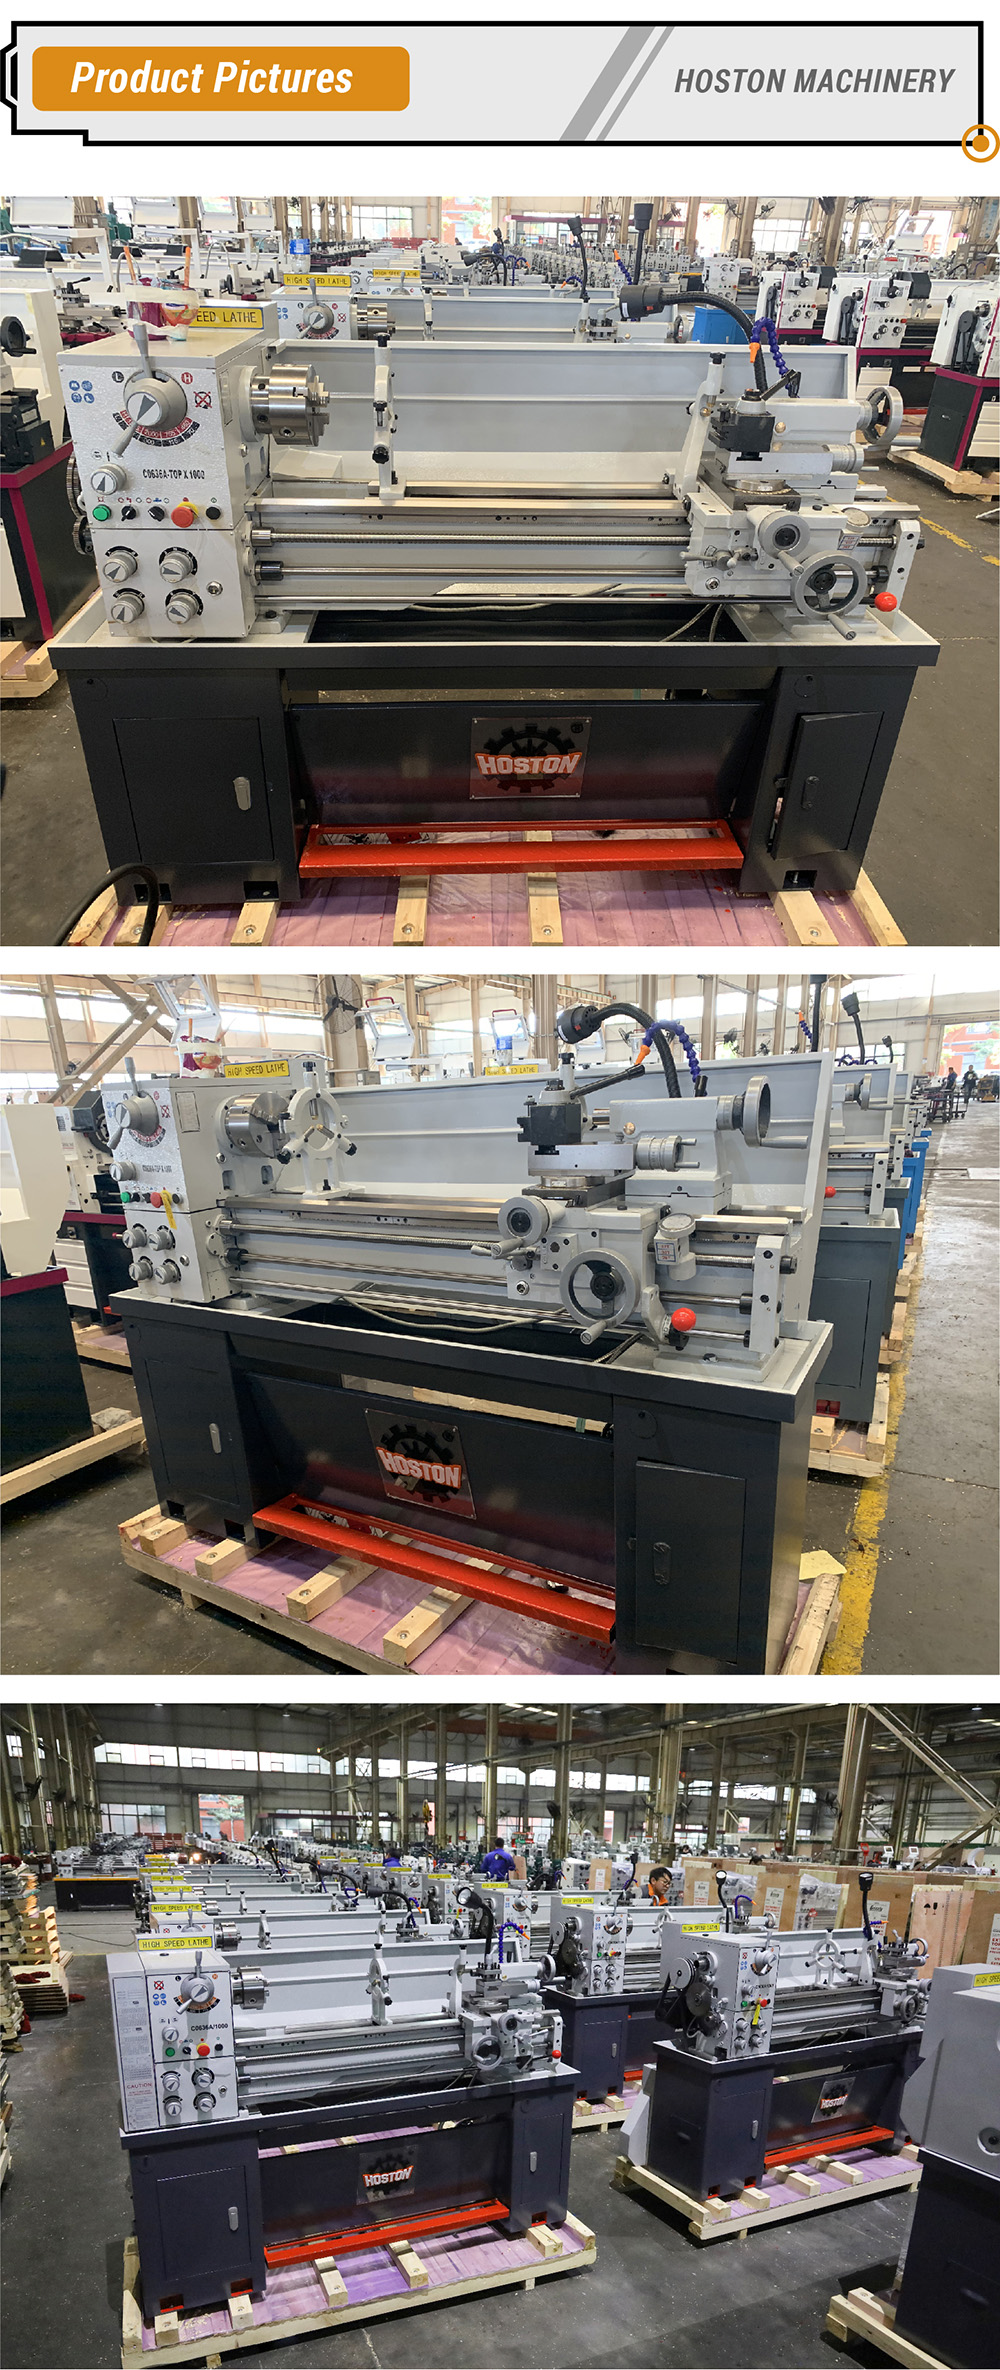 bench lathe product pictures